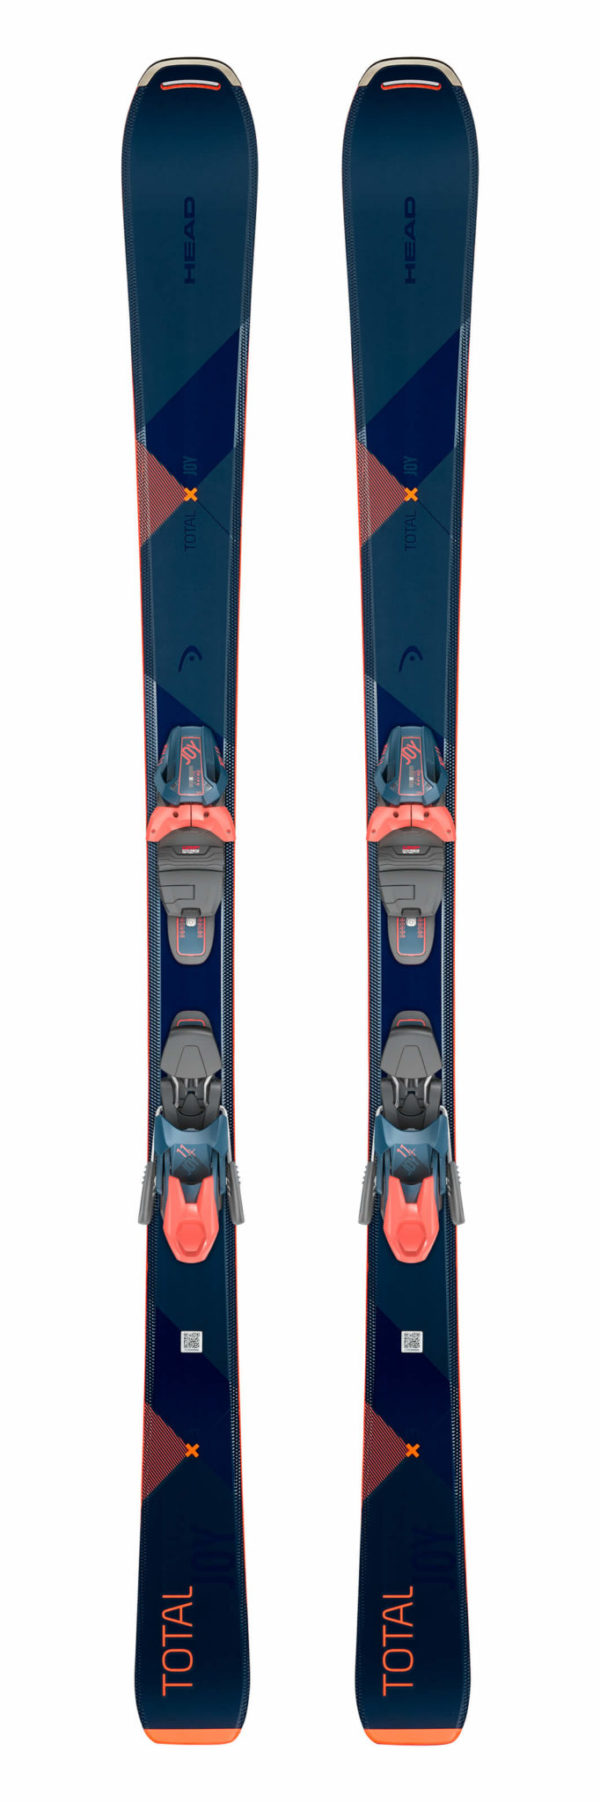 Head Total Joy Women's Skis with Joy 11 GW Bindings 2019-20 at Northern Ski Works 1